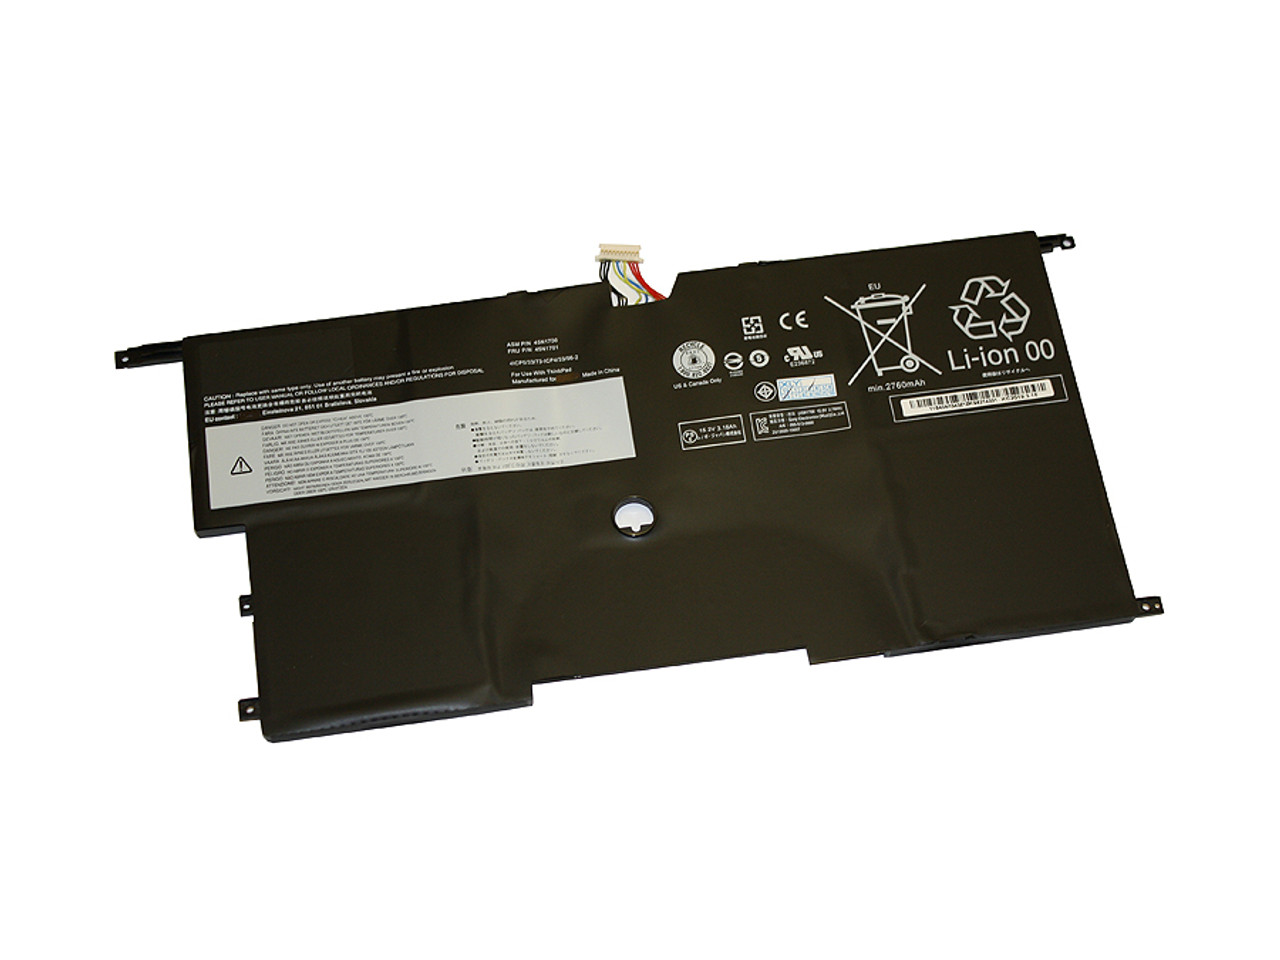 Replacement Battery for LENOVO Thinkpad X1 Carbon 2nd Gen replacing